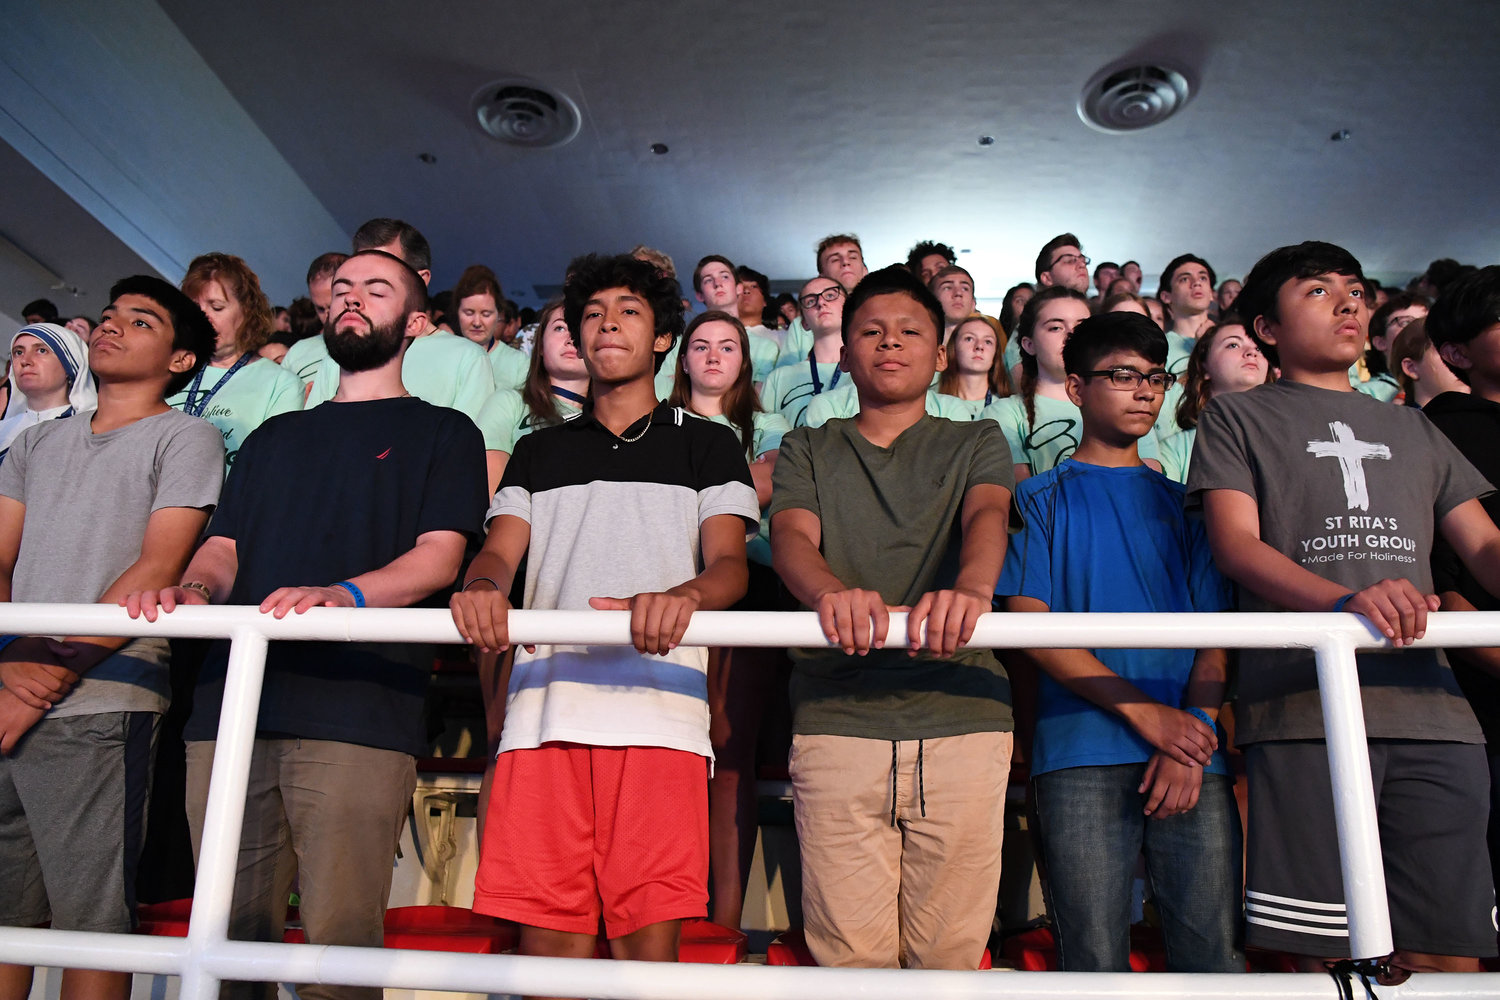 Teens' Catholic Faith Flourishes at Steubenville NYC Conference